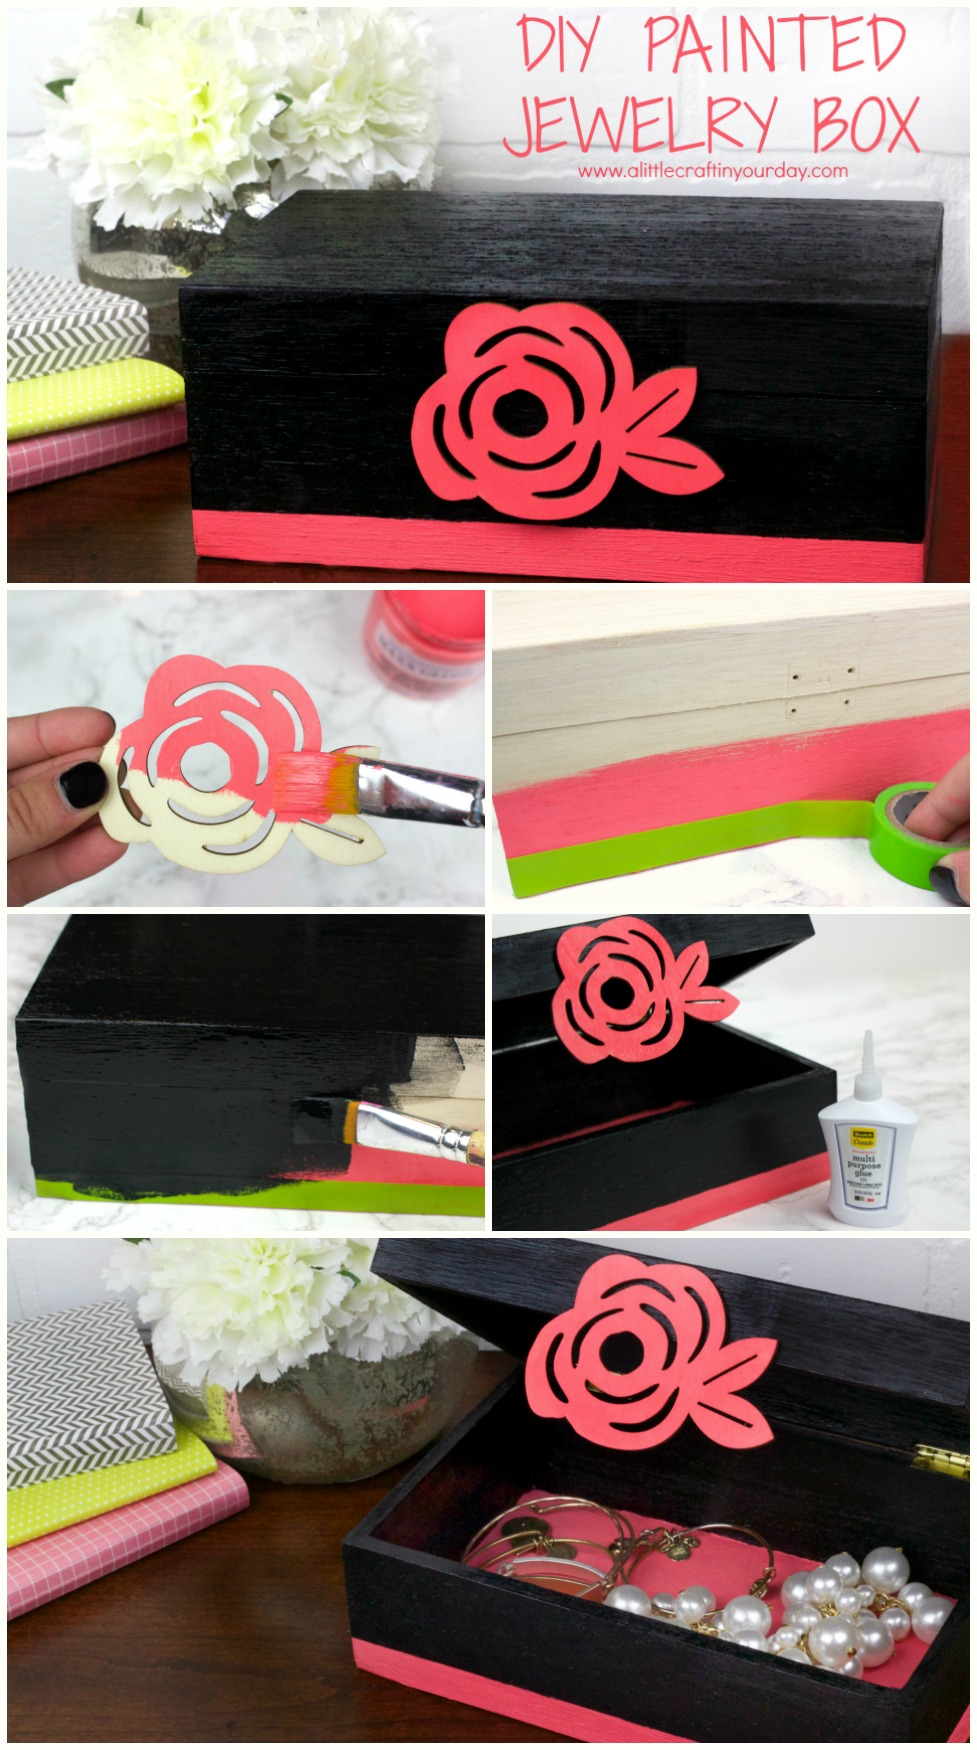 DIY_Painted_Jewelry_Box_1